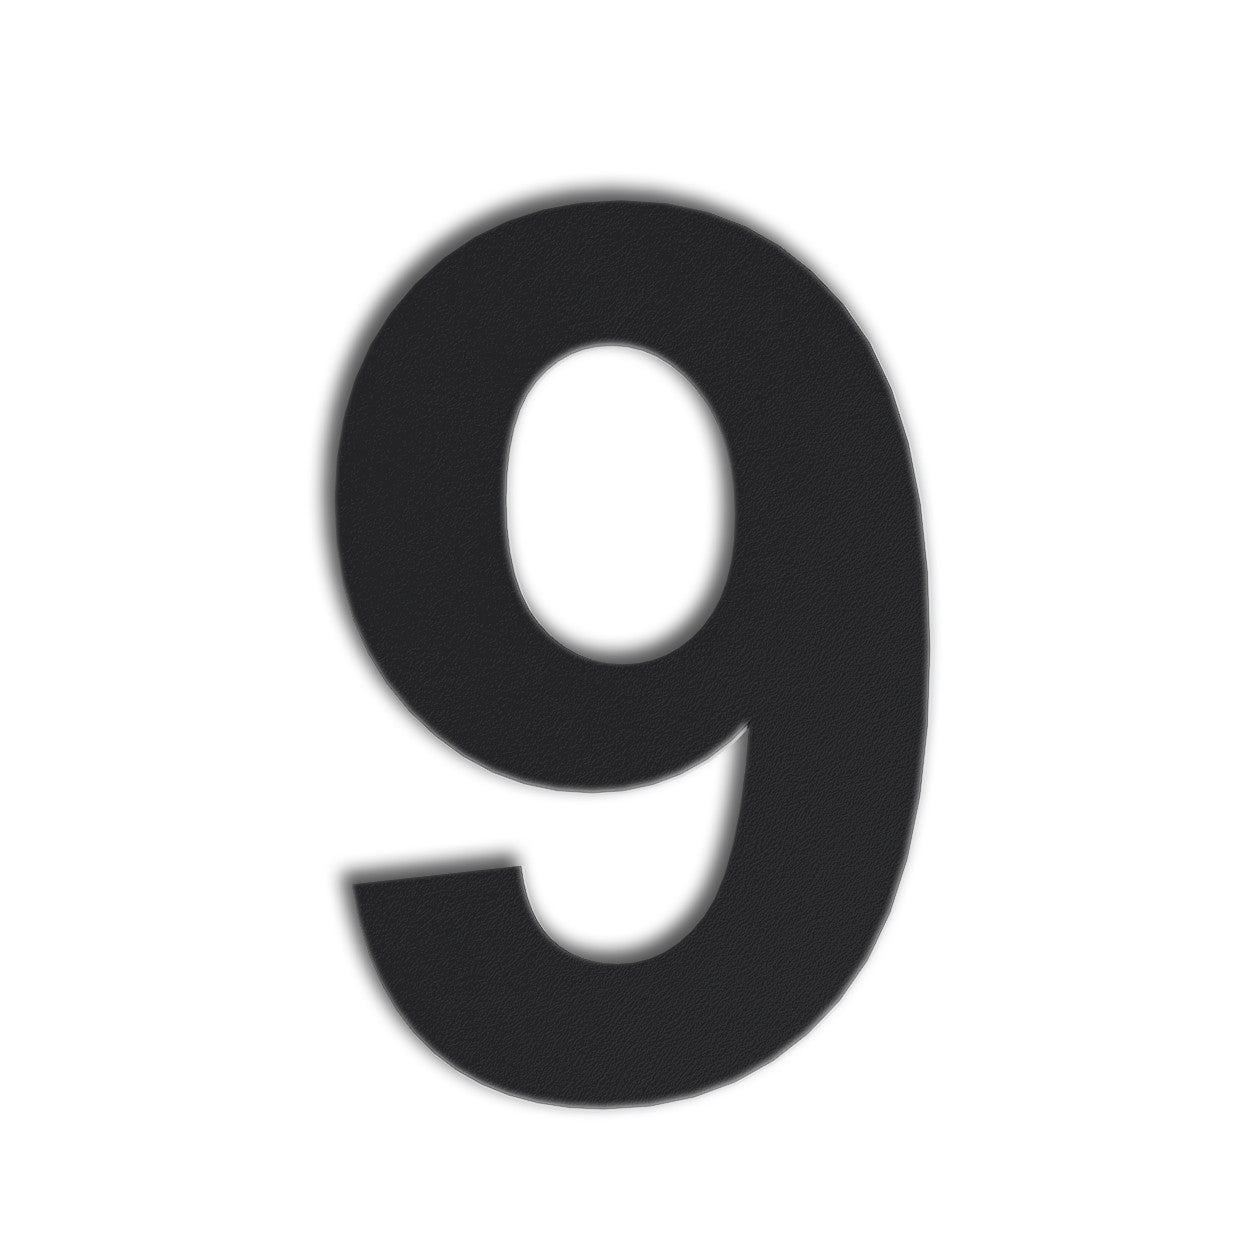 QT Modern House Number - SMALL 4 Inch BLACK - Made of solid 304